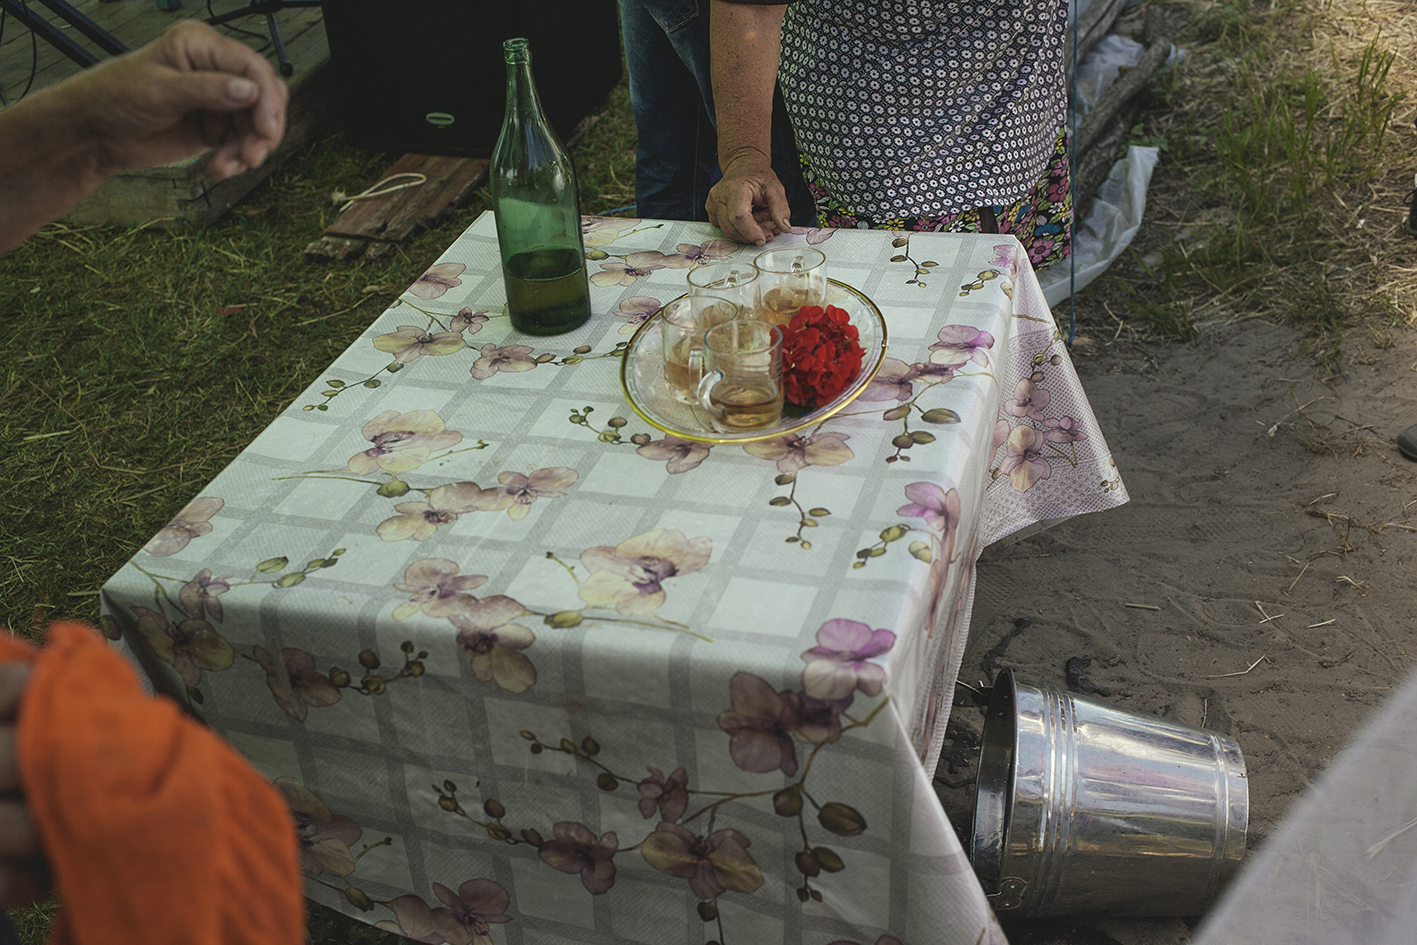 Table at the entrance of the wedding, Letea, Romania, 2015